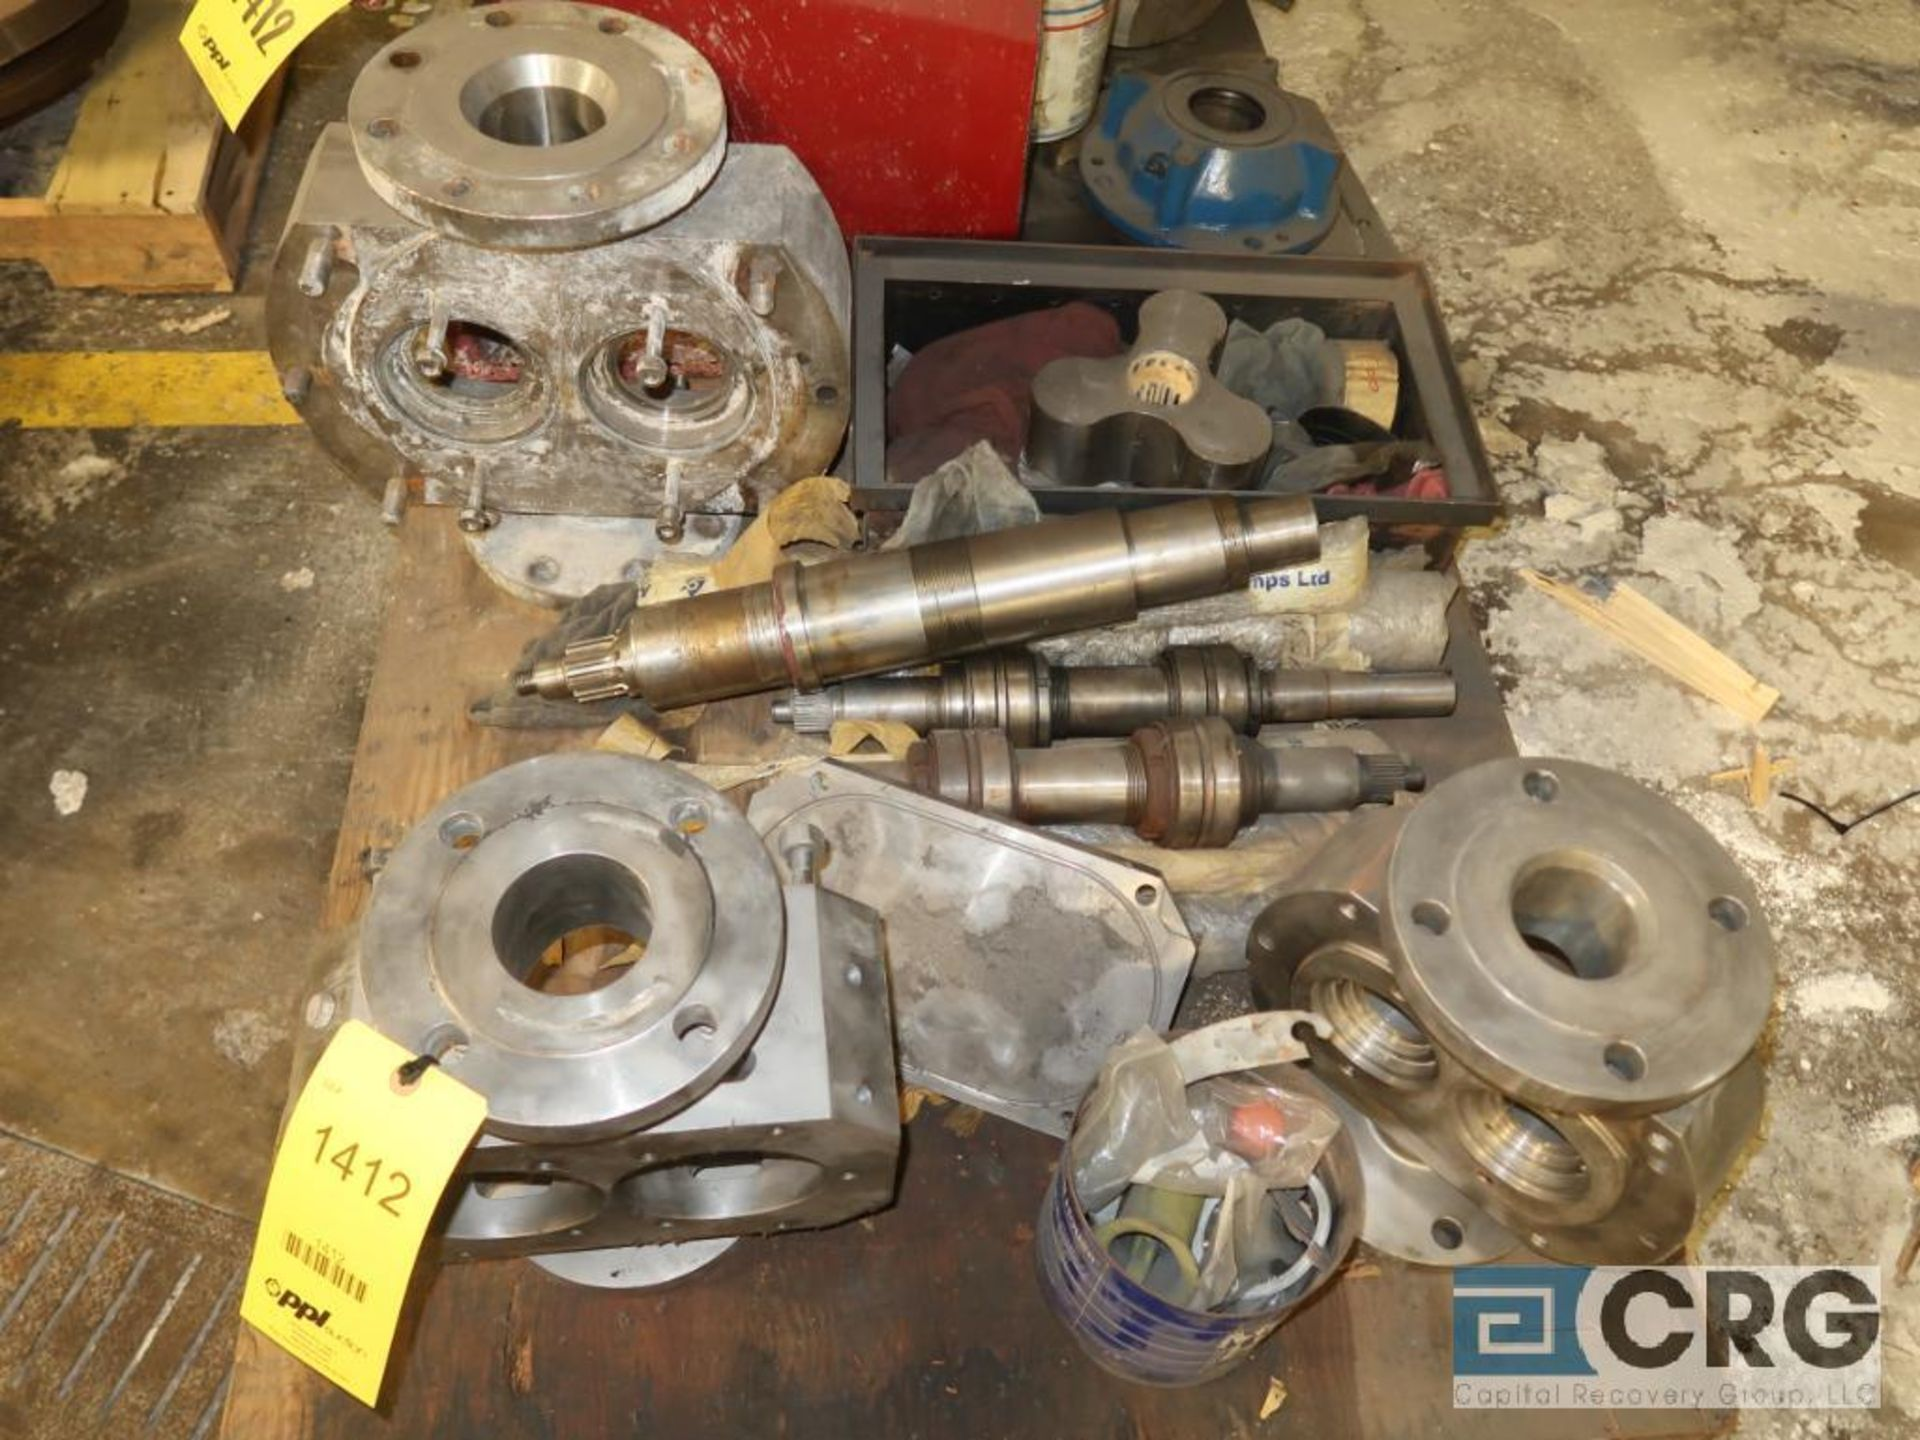 Lot of assorted Waukesha pump parts on (2) pallets including impellers, gaskets, and sen. Shafts (